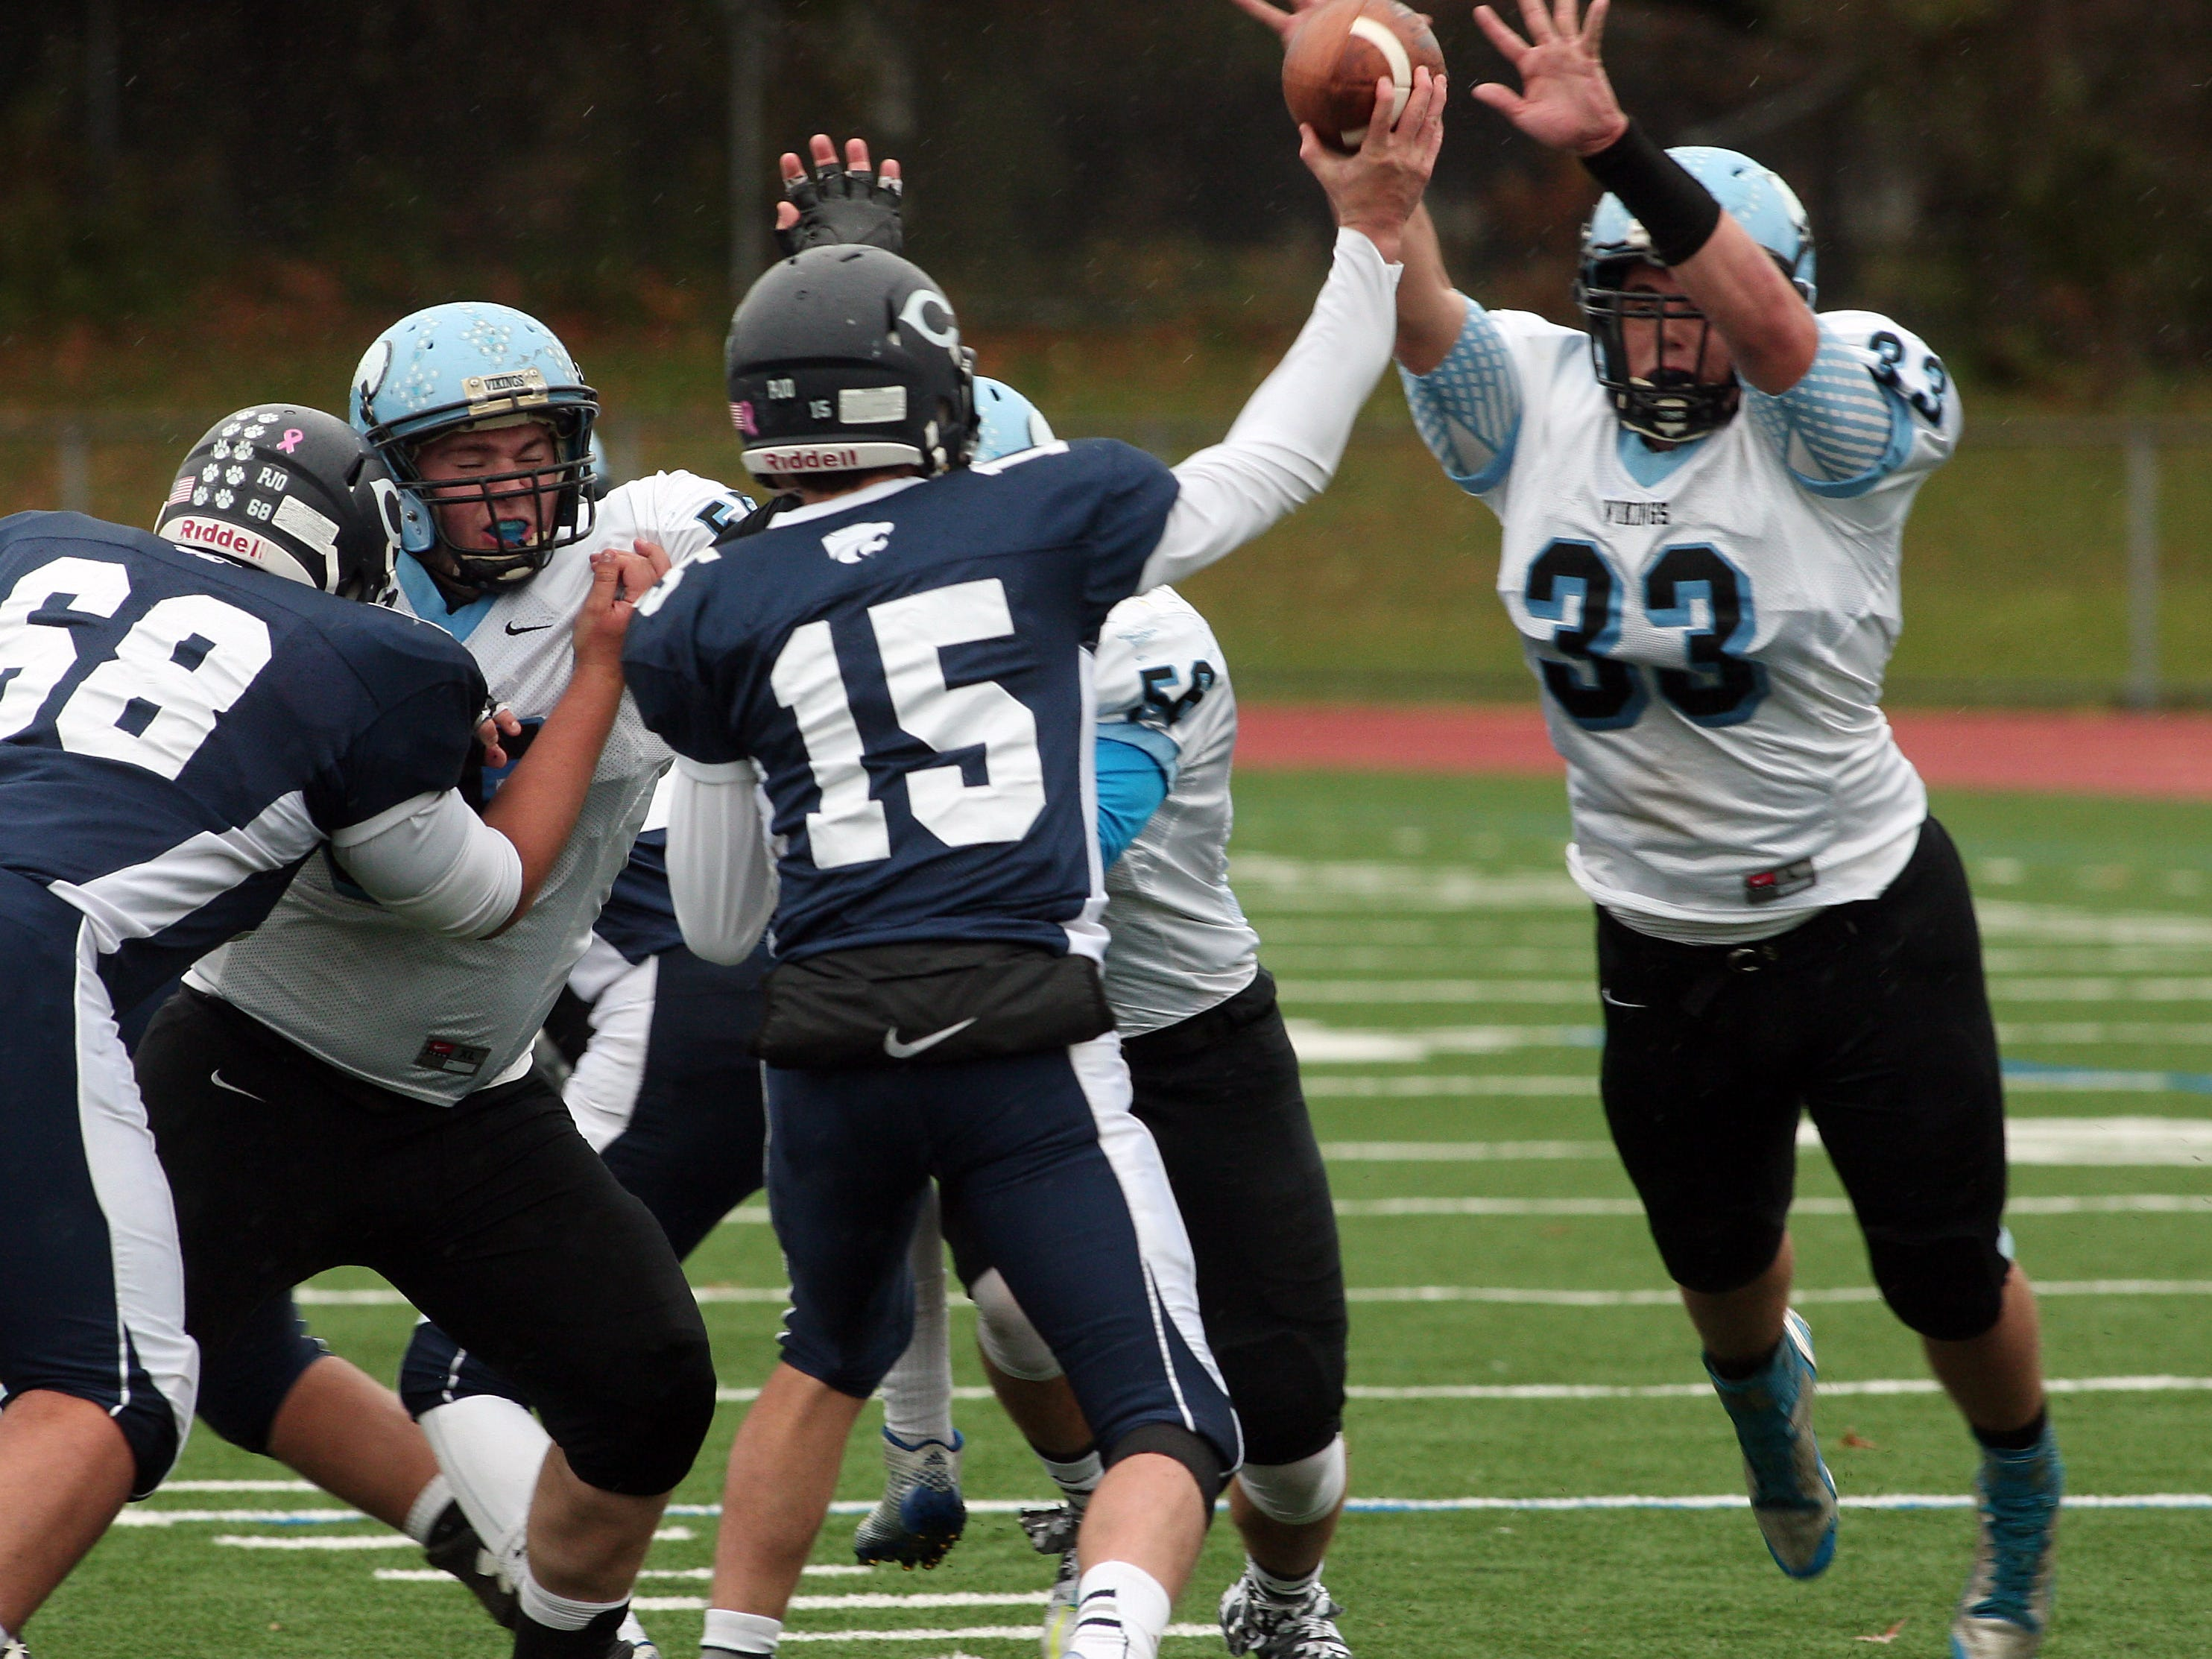 Parsippany Hills' Jared Salgado bears down on Chatham quarterback Alex Sands, knocking down the pass during a game earlier this season.